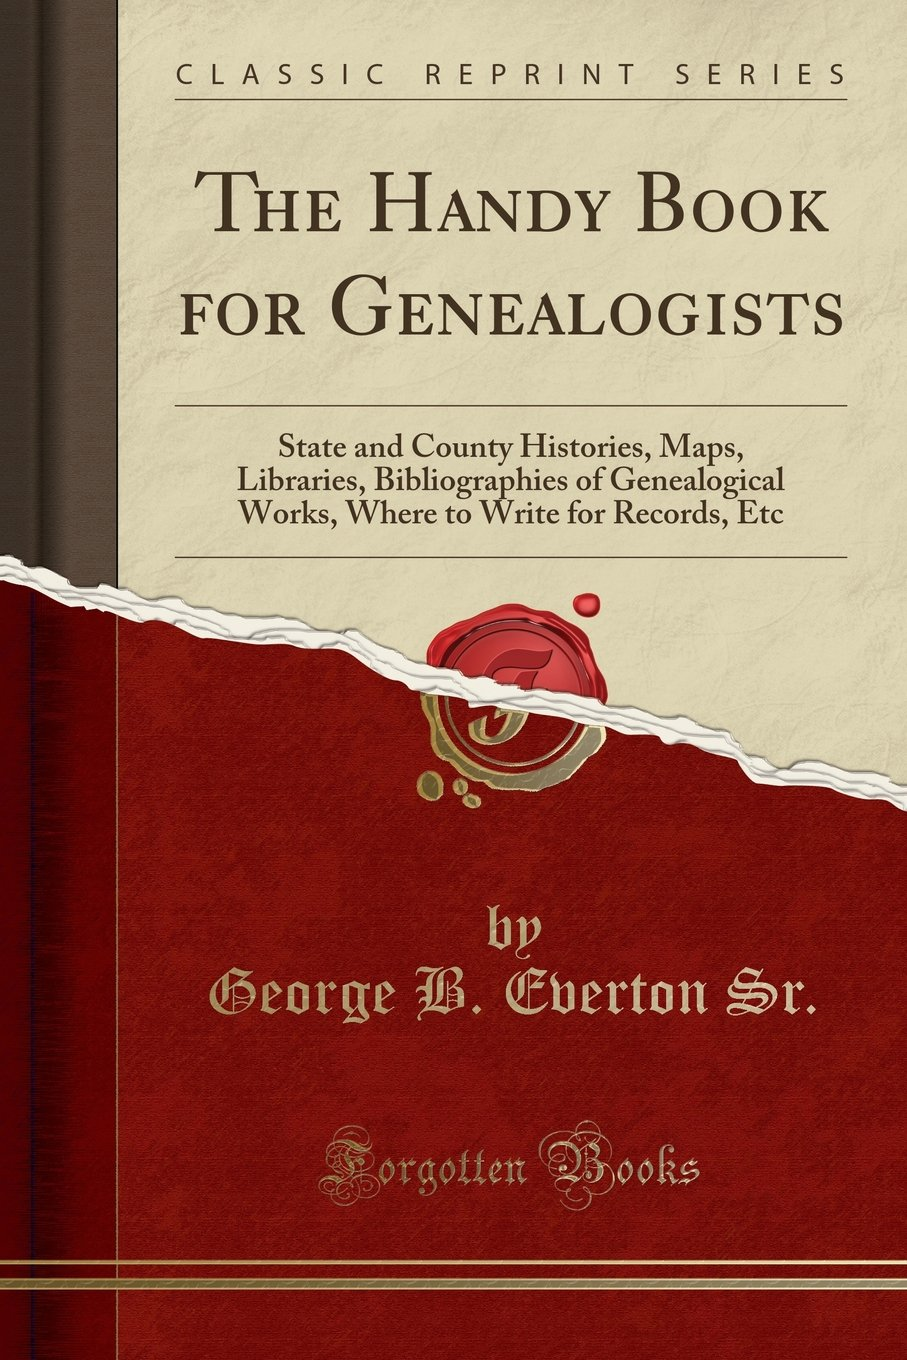 The Handy Book for Genealogists: State and County Histories, Maps, Libraries, Bibliographies of Genealogical Works, Where to Write for Records, Etc (Classic Reprint)